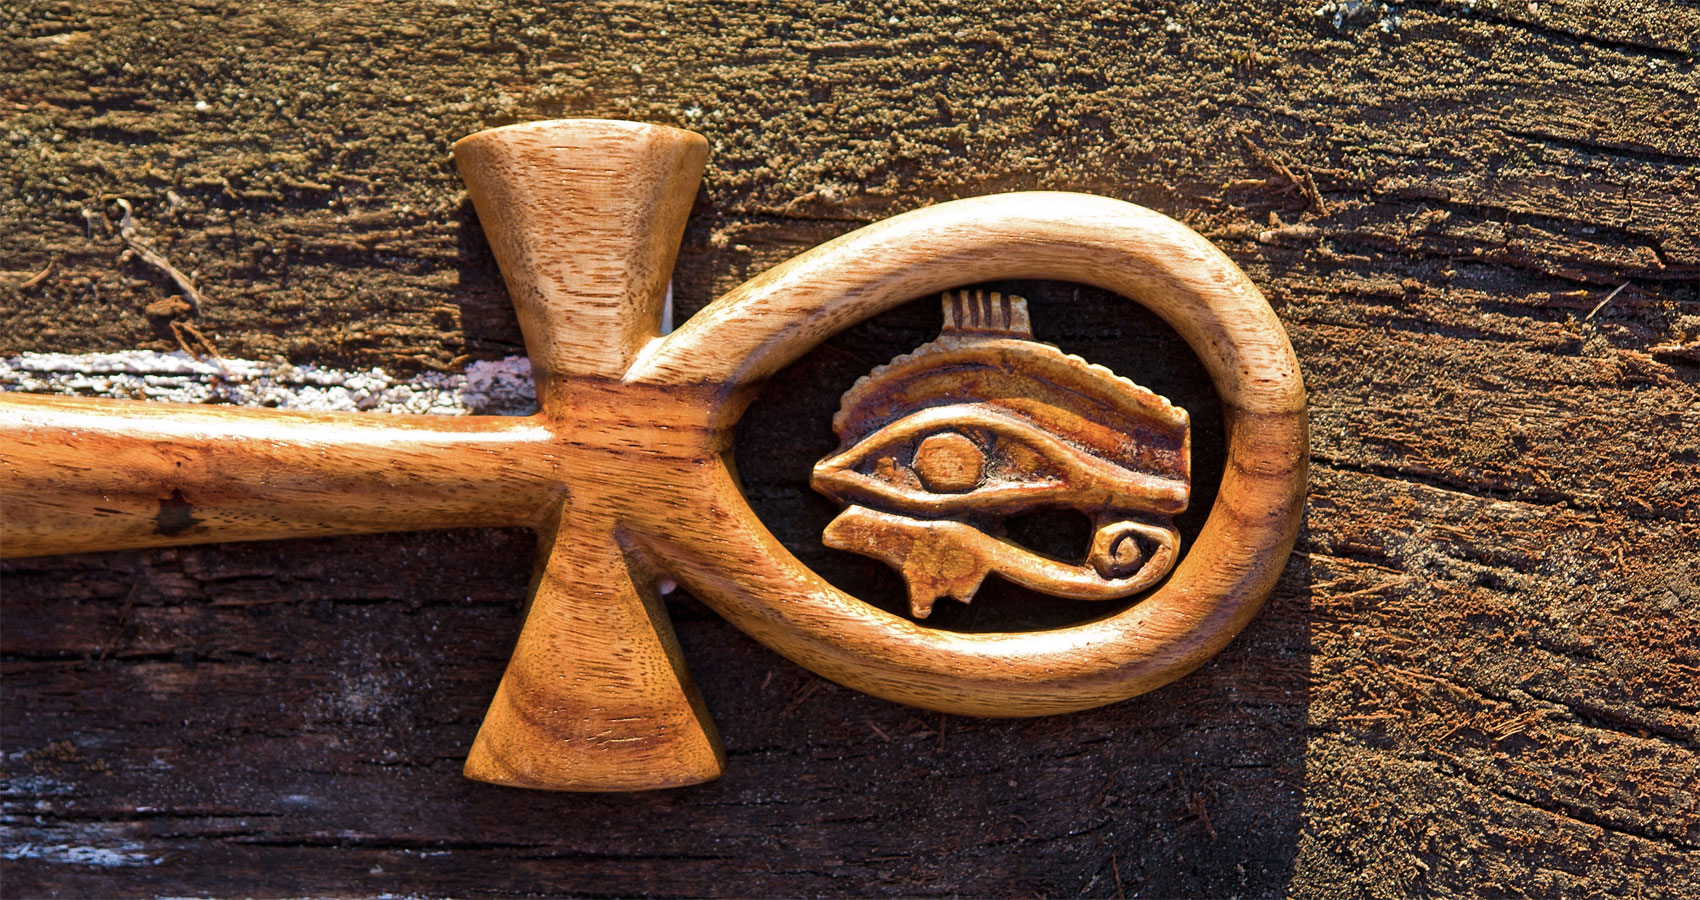 ANCIENT FICTIONALITY: Egyptian Religion - Myth, Intellect and Grass Roots written by Stanley Wilkin at Spillwords.com